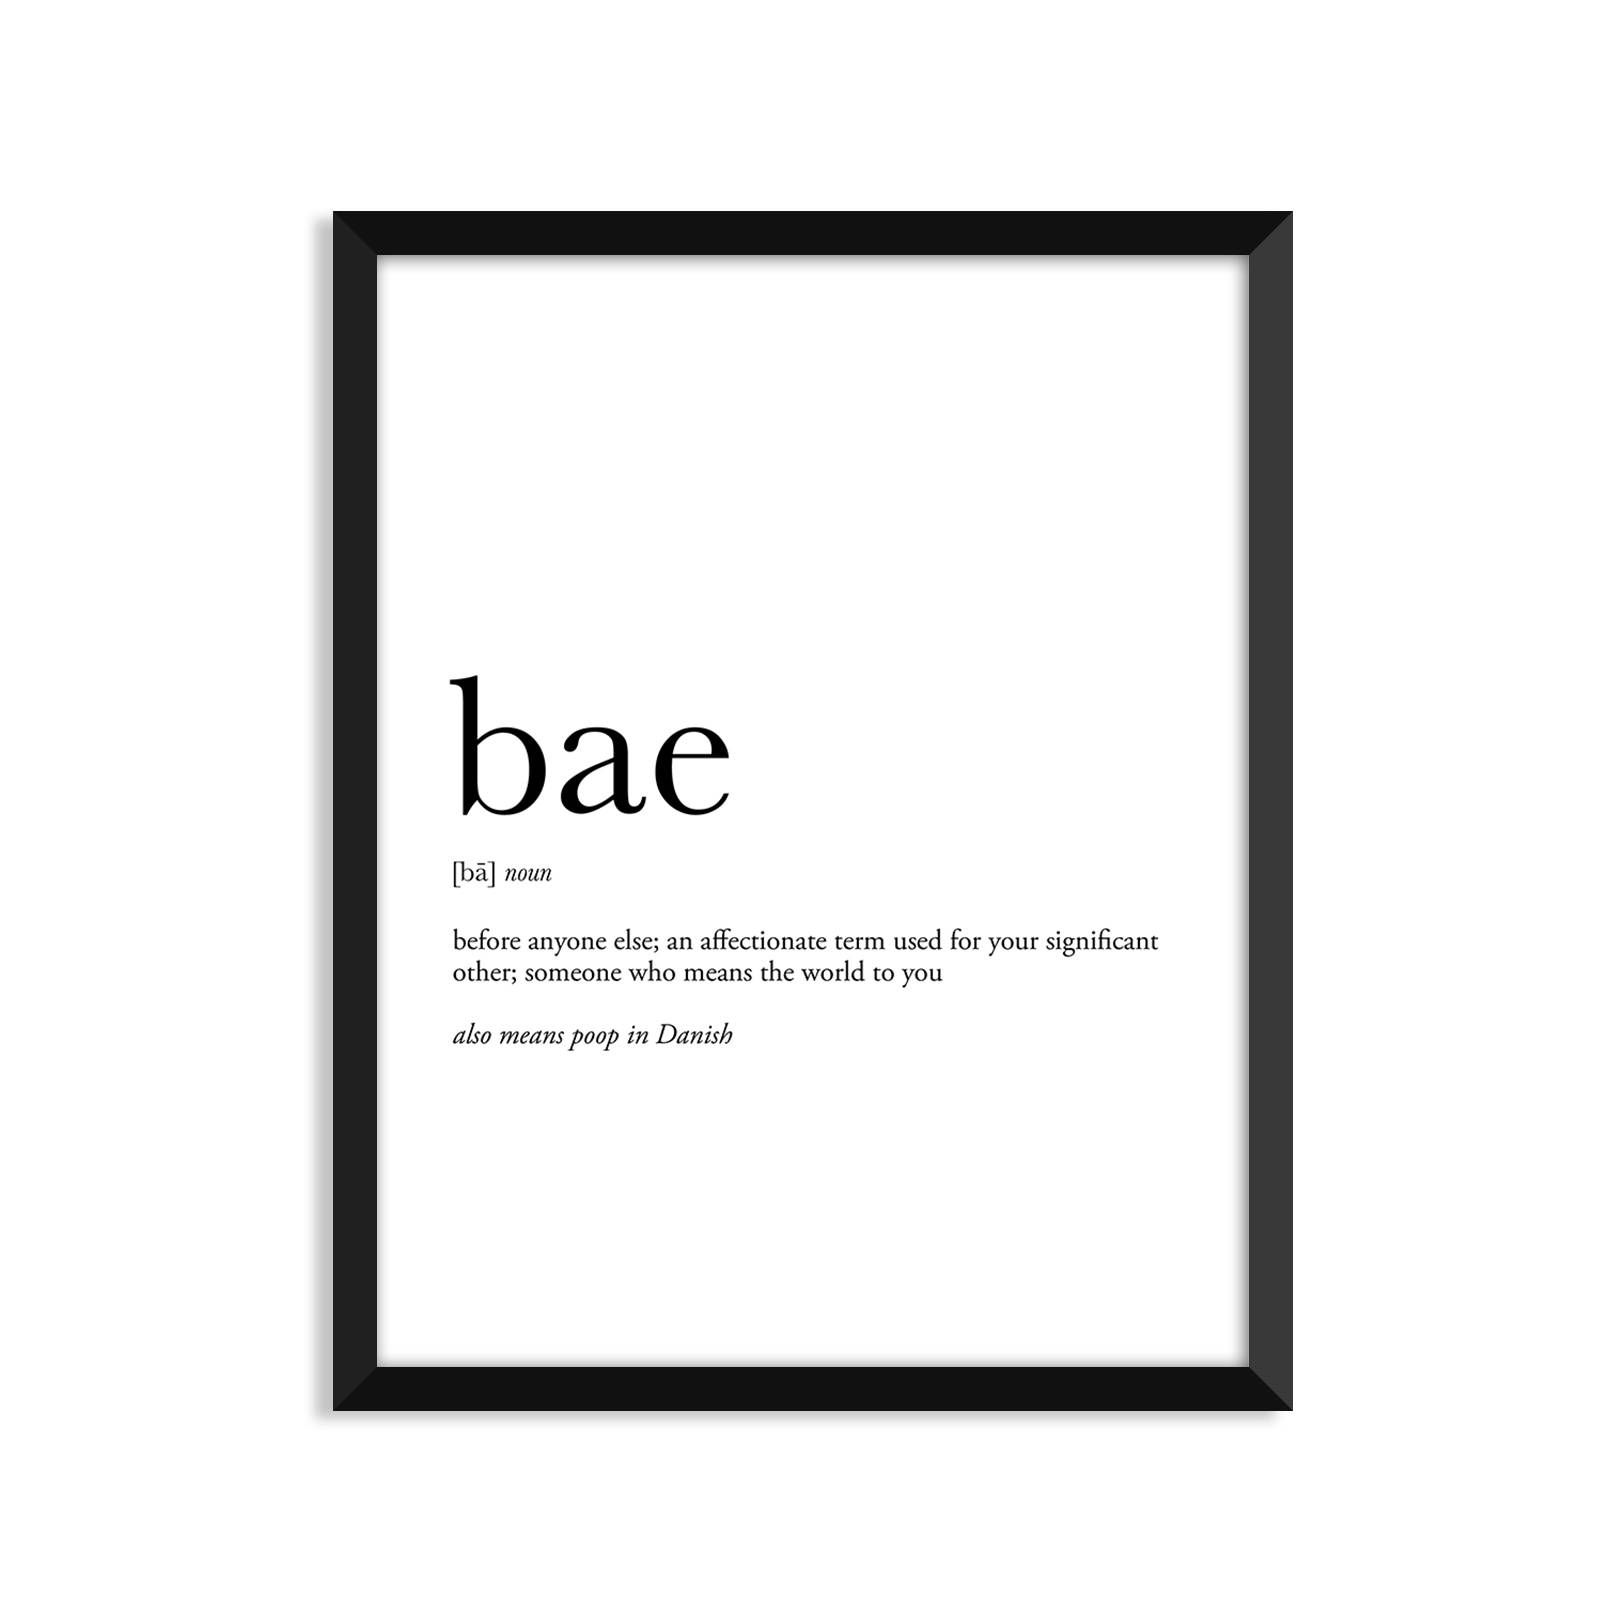 Bae definition romantic dictionary art print office decor | Etsy